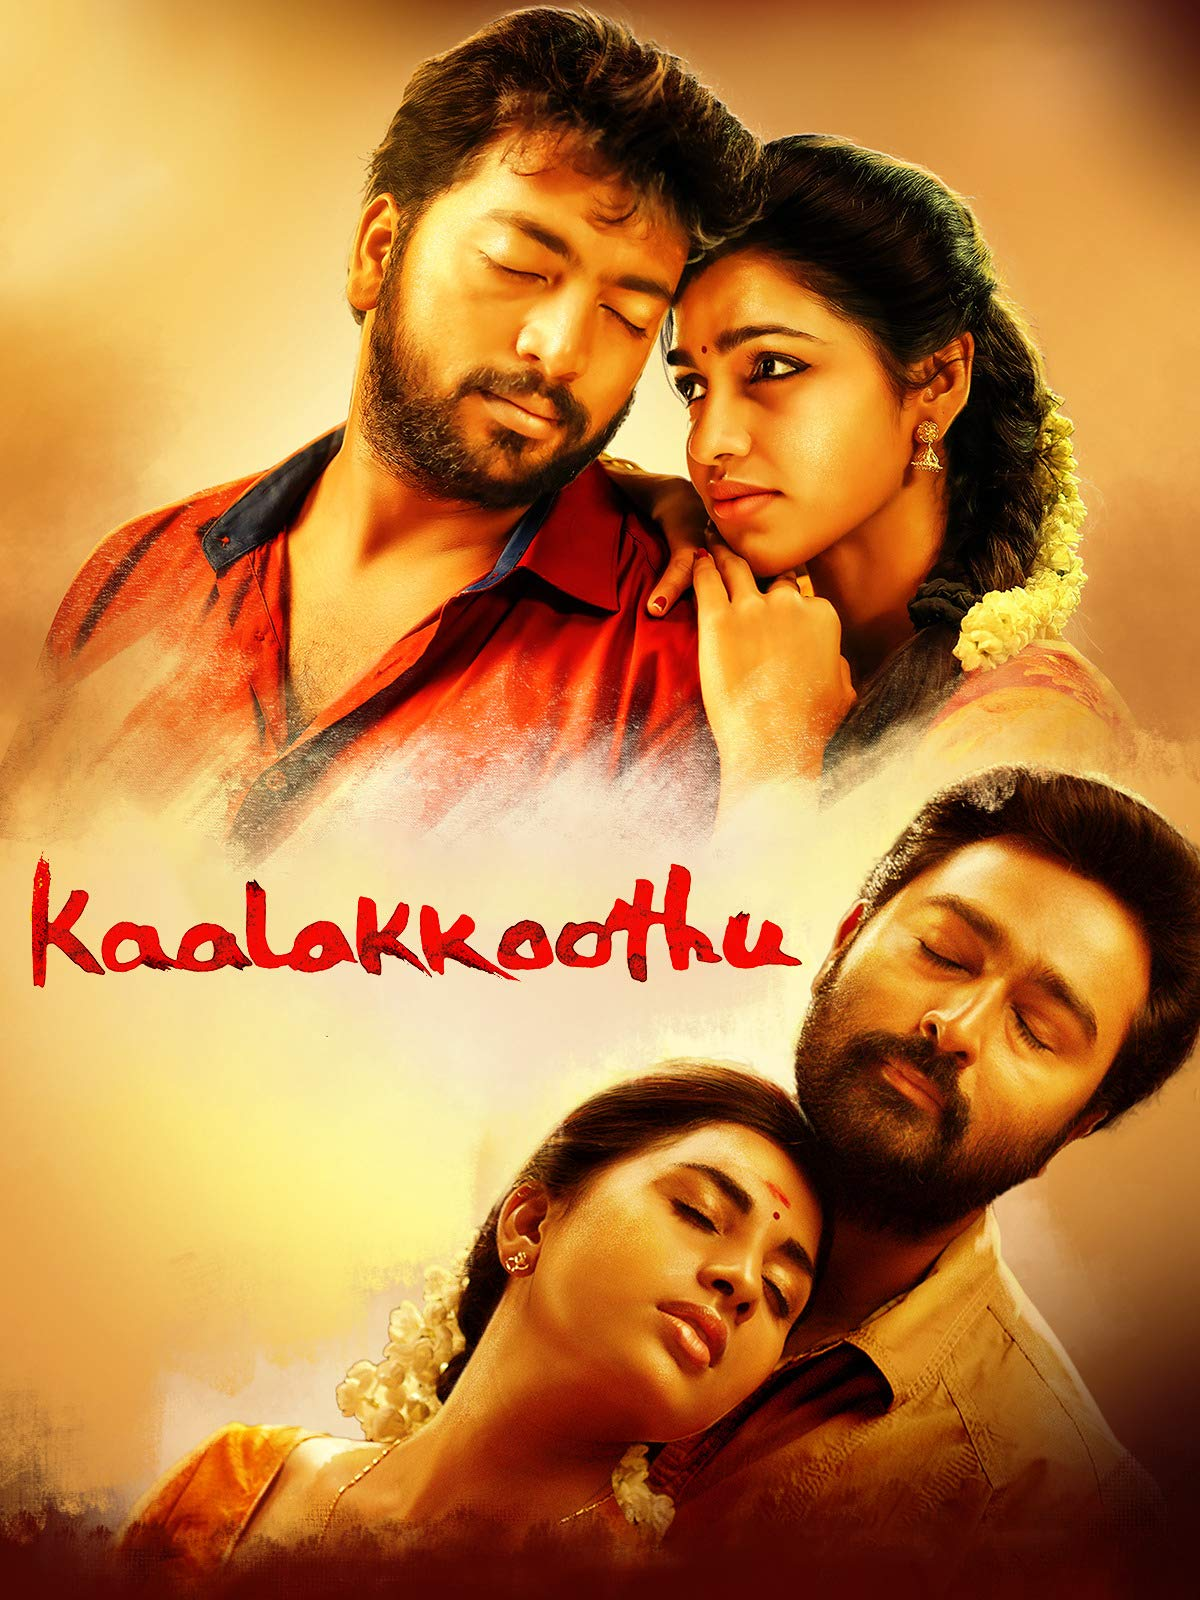 Dosti No.1 (Kaala Koothu) 2020 Hindi Dubbed 1080p HDRip 1.2GB Download